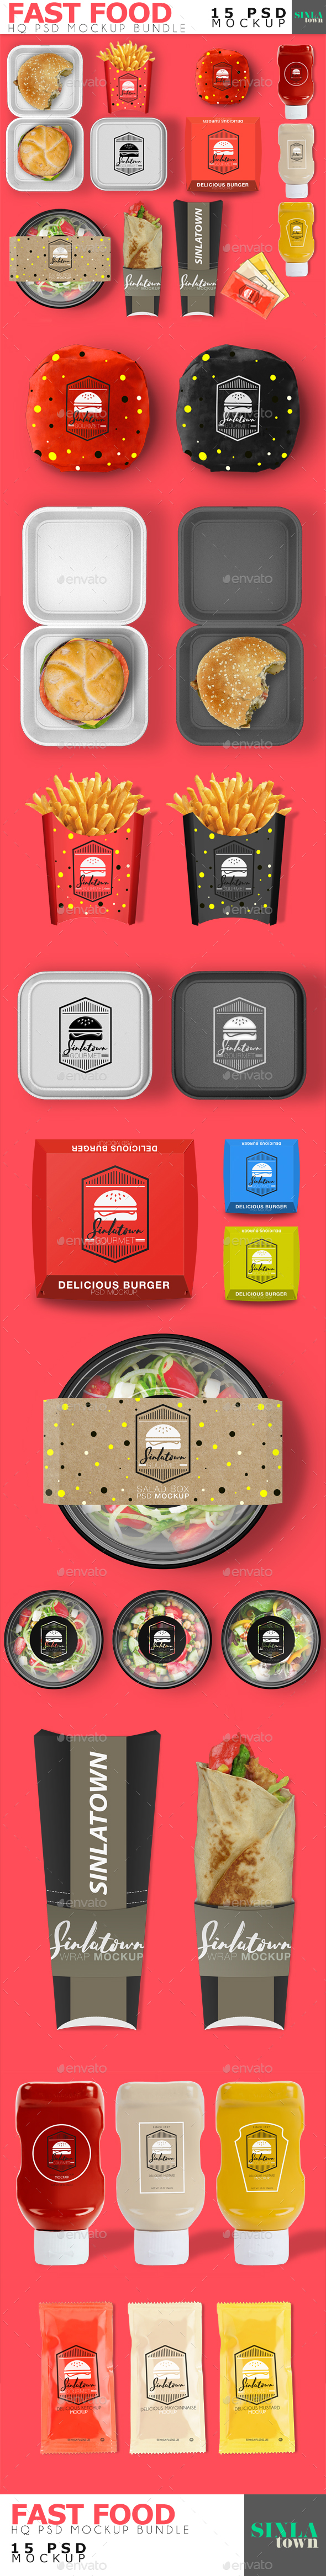 Fast Food Product Mockup Bundle - Product Mock-Ups Graphics